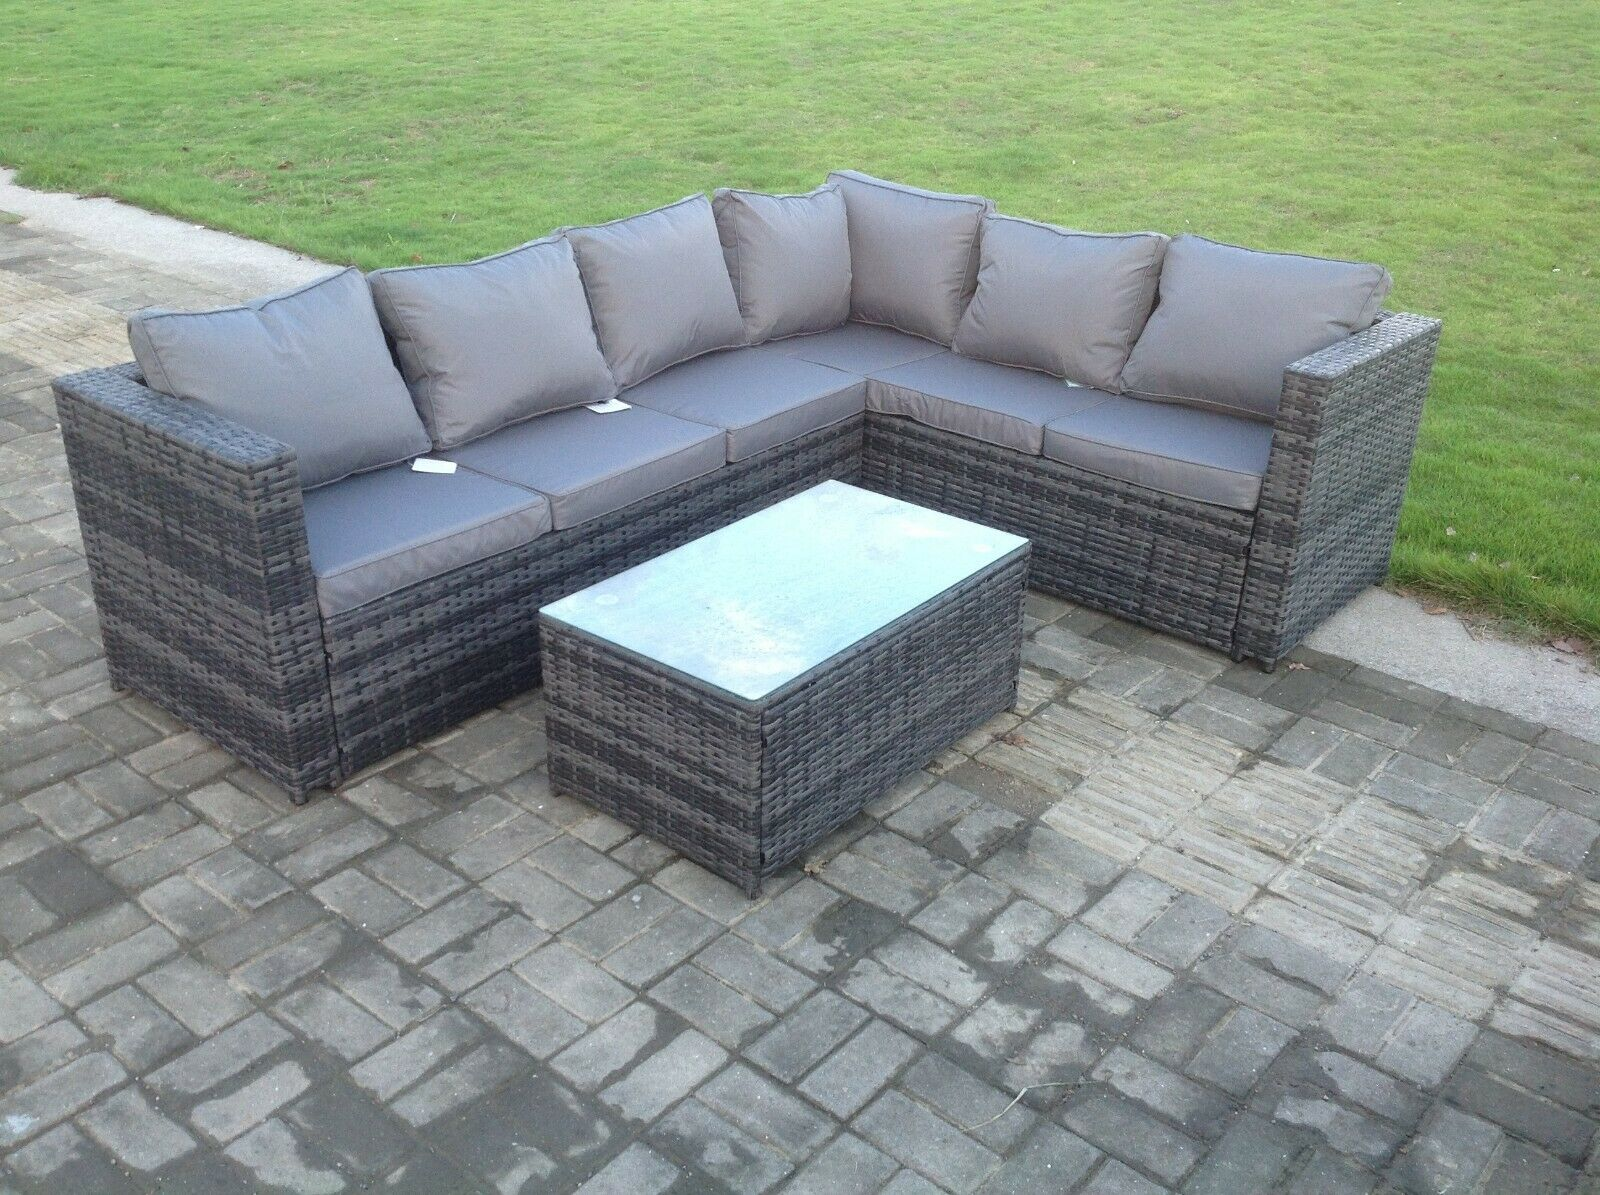 Garden Furniture - 6 seater wicker rattan corner sofa set table outdoor garden furniture patio grey